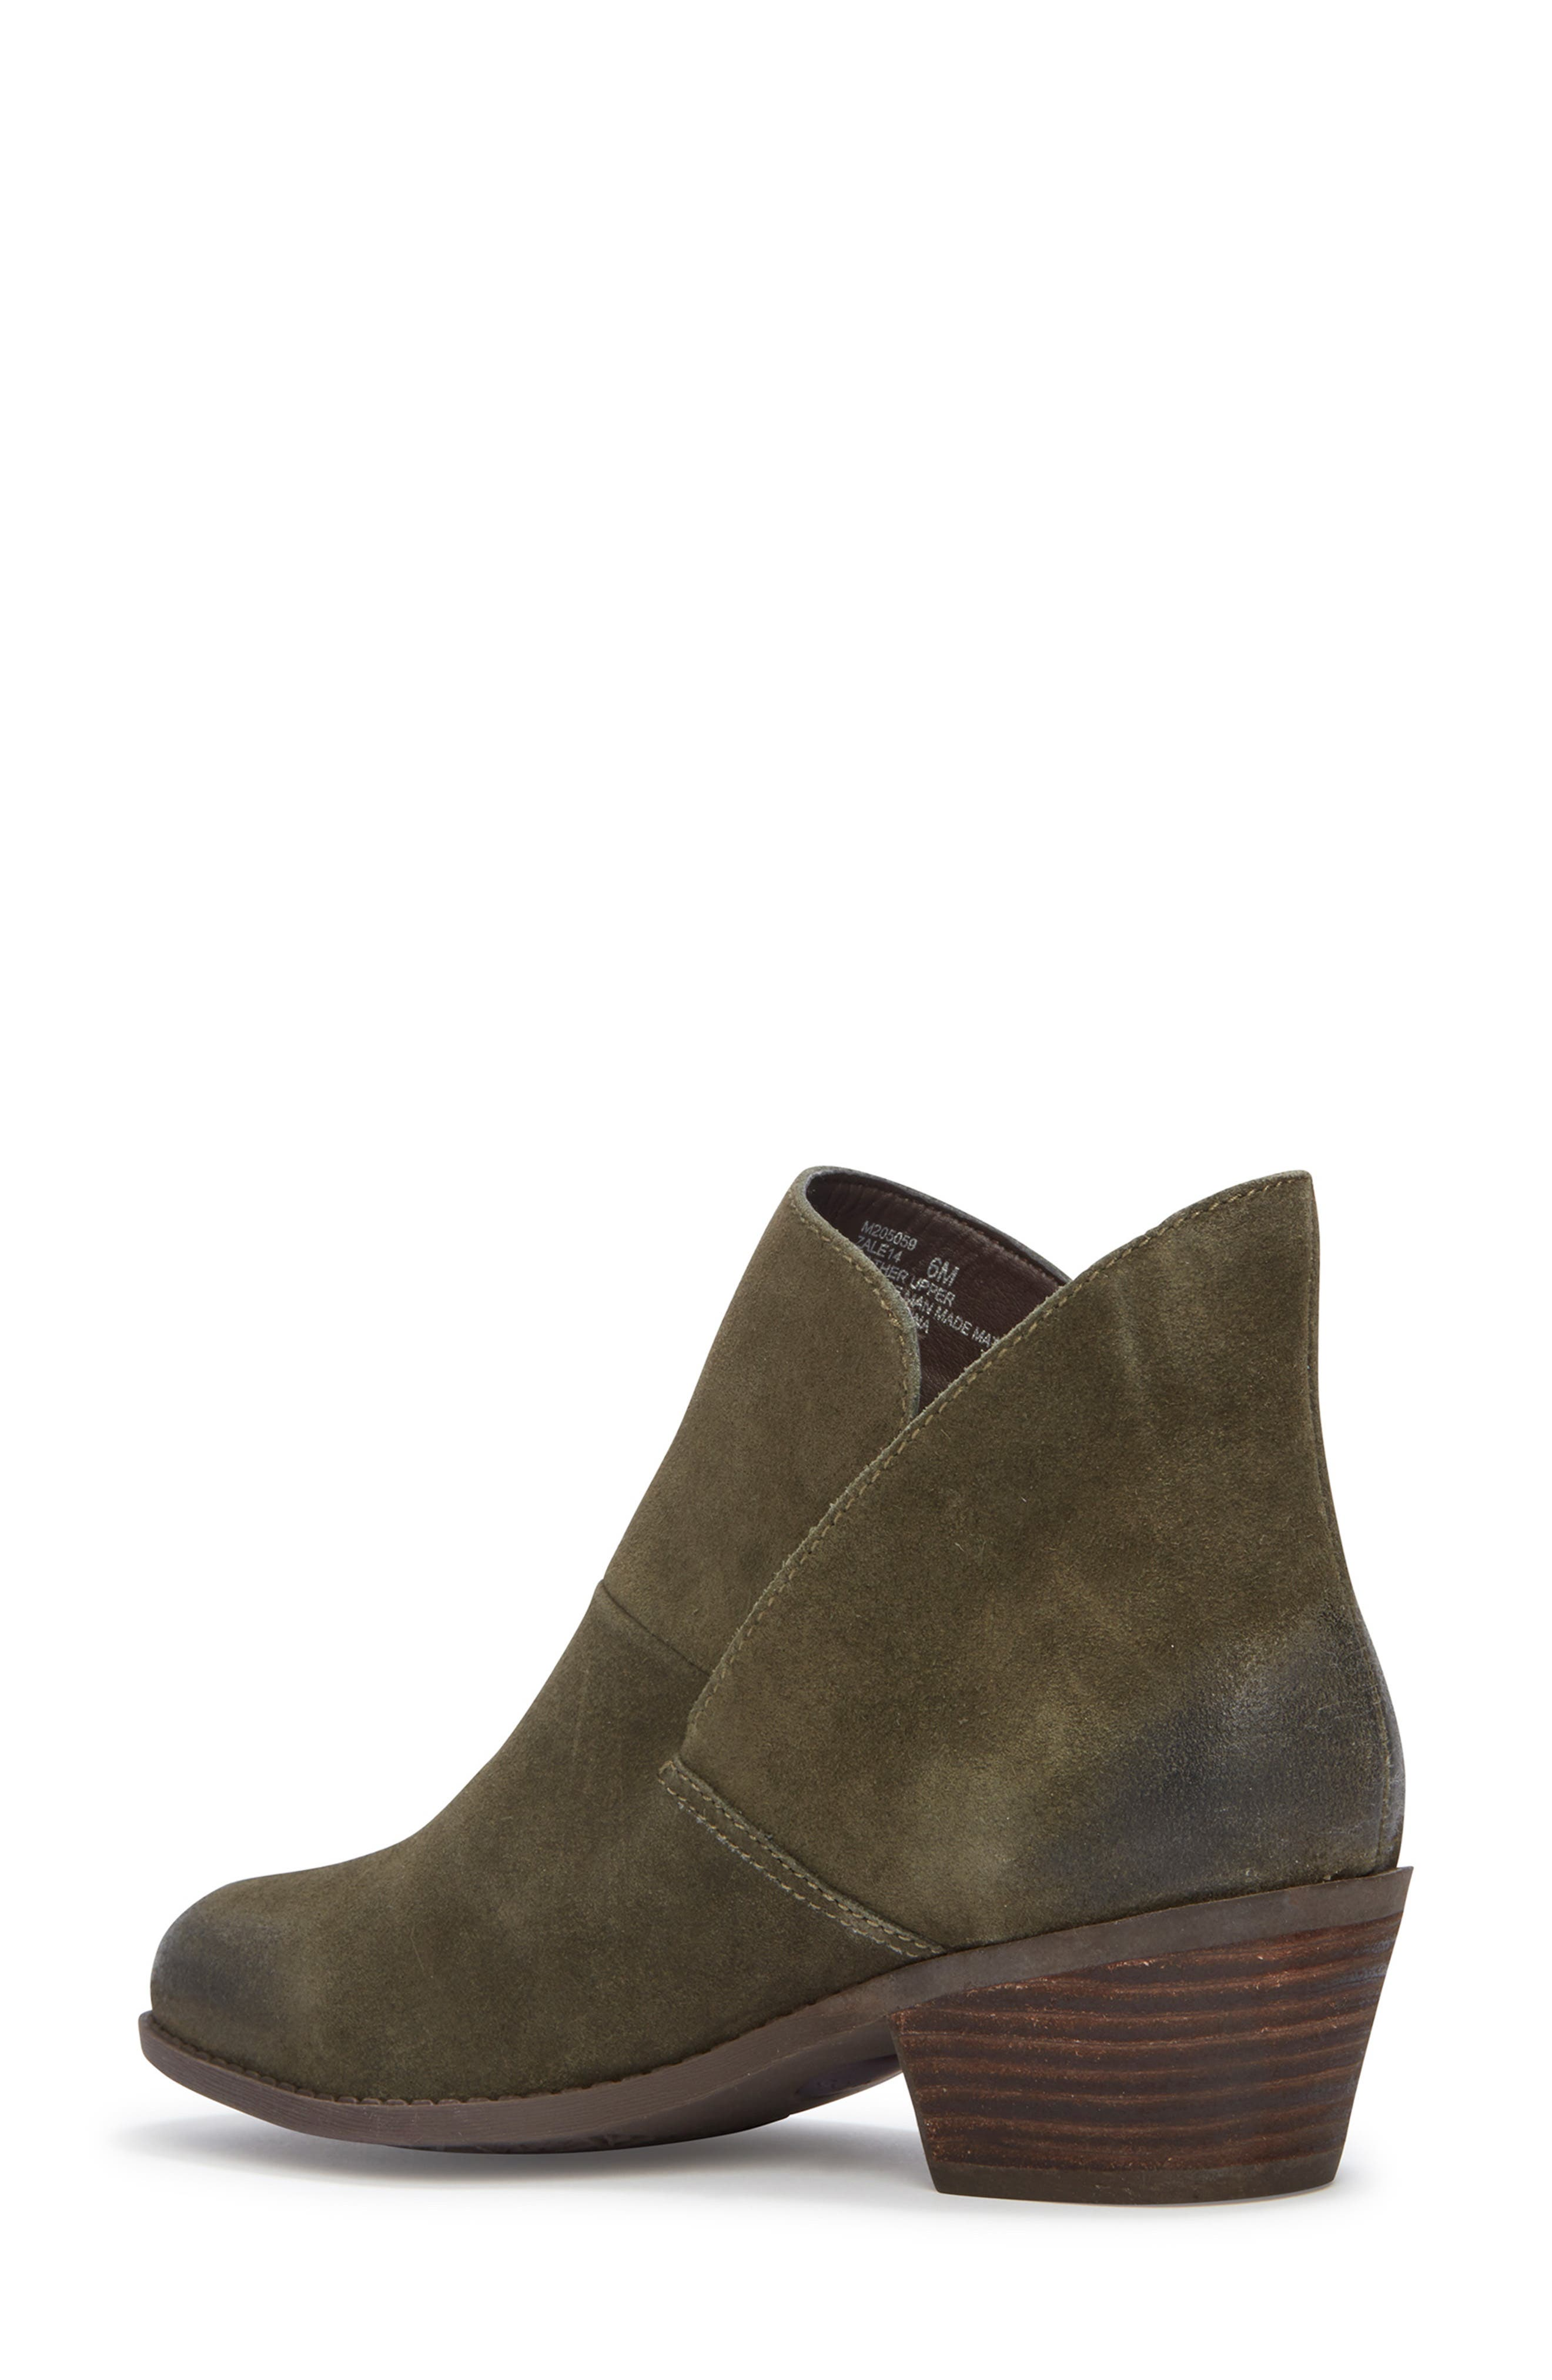 Me Too Zena Ankle Boot,                             Alternate thumbnail 2, color,                             Moss Suede